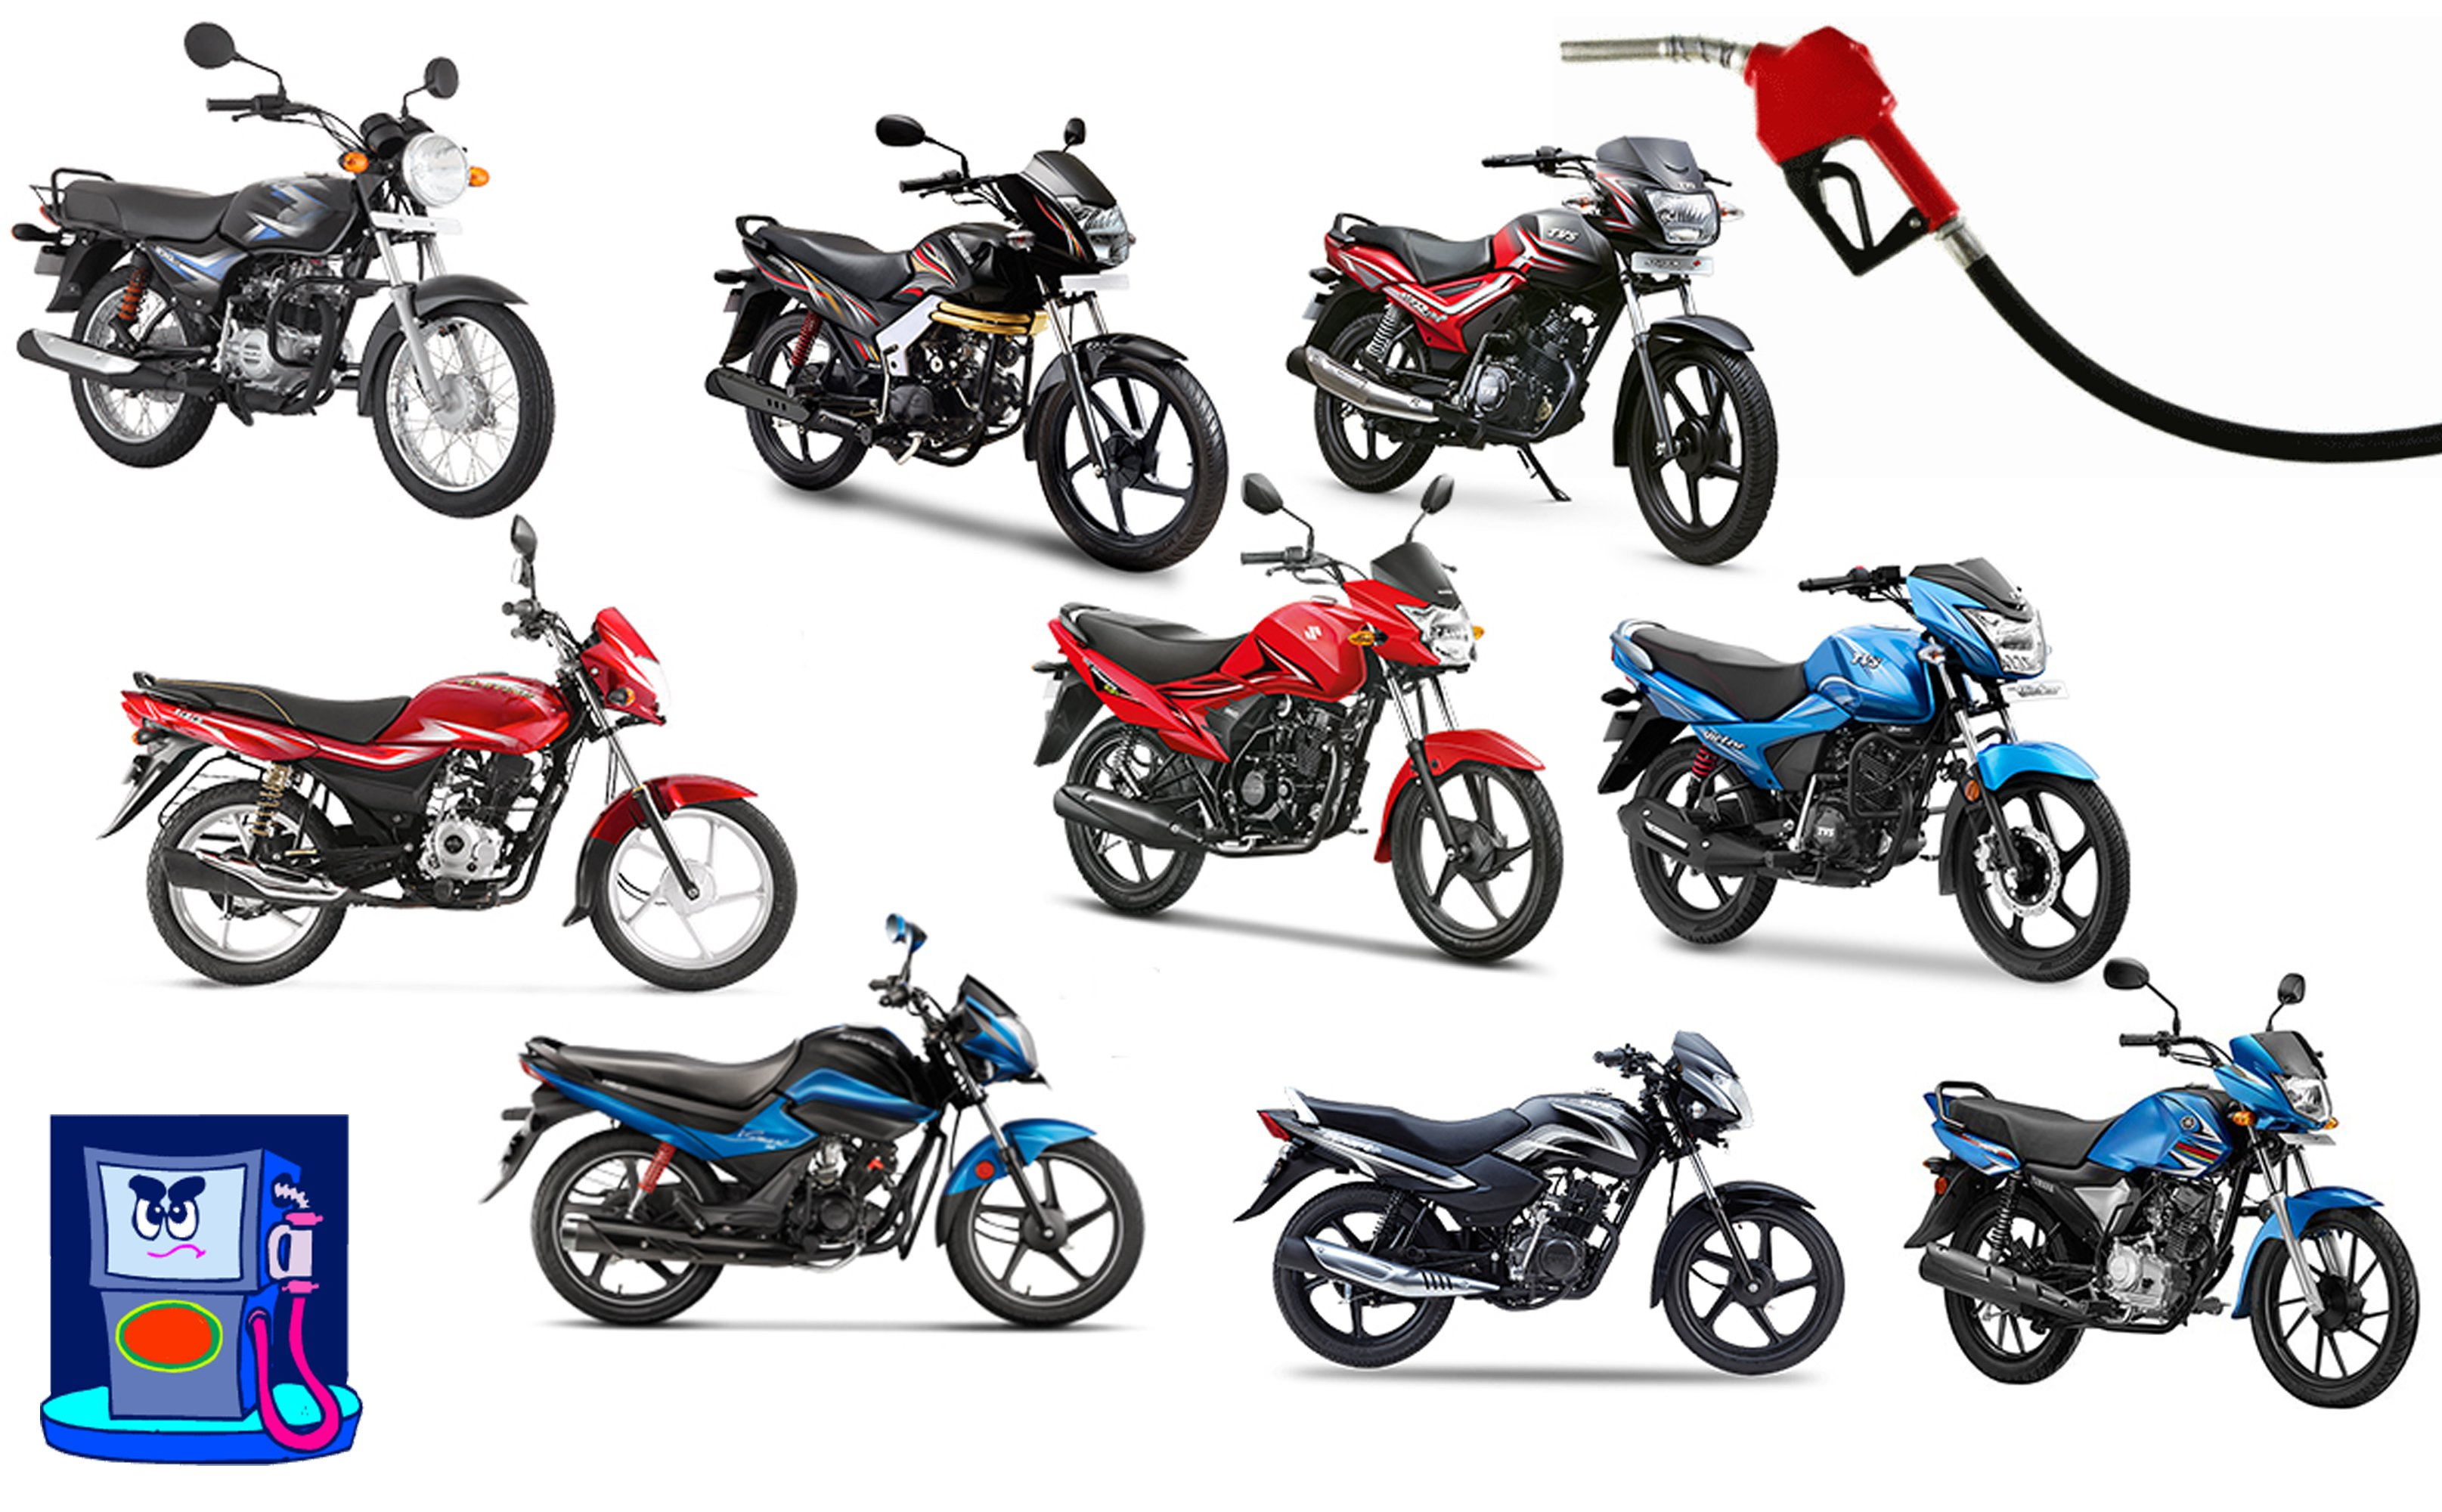 60 kmpl to 80 kmpl mileage bikes in india with price specifications